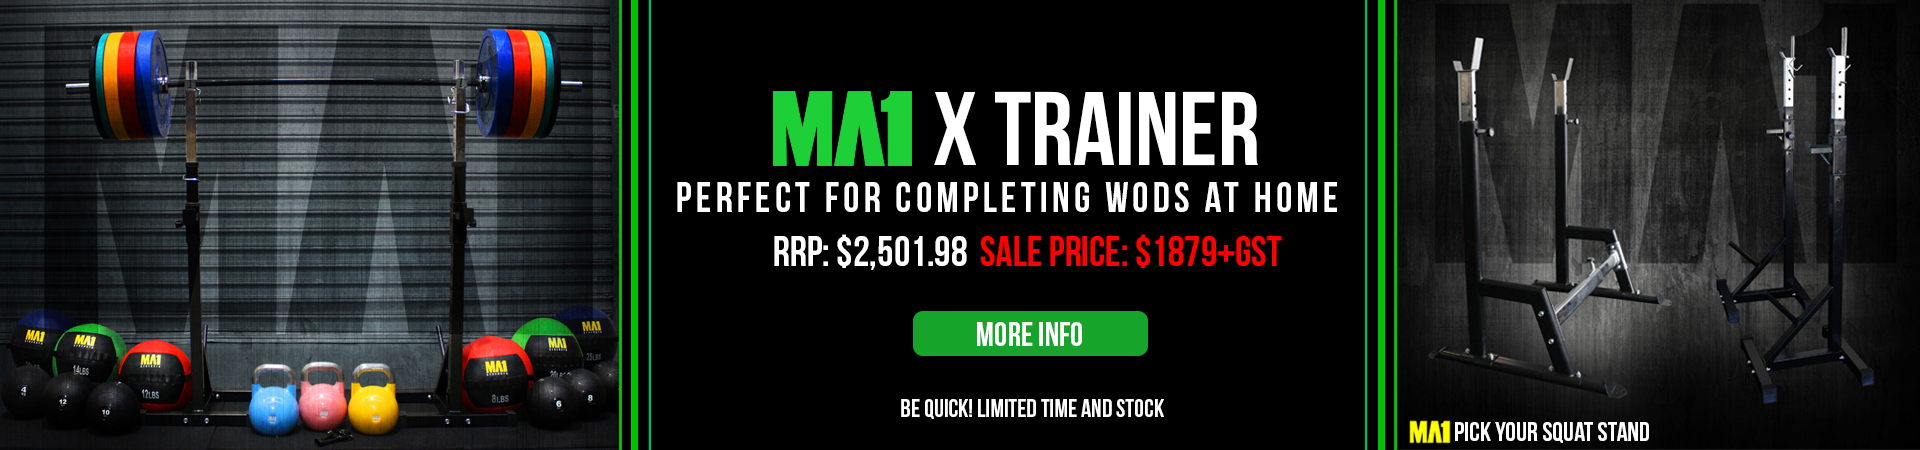 MA1 X Trainer - Perfect for WODs at home